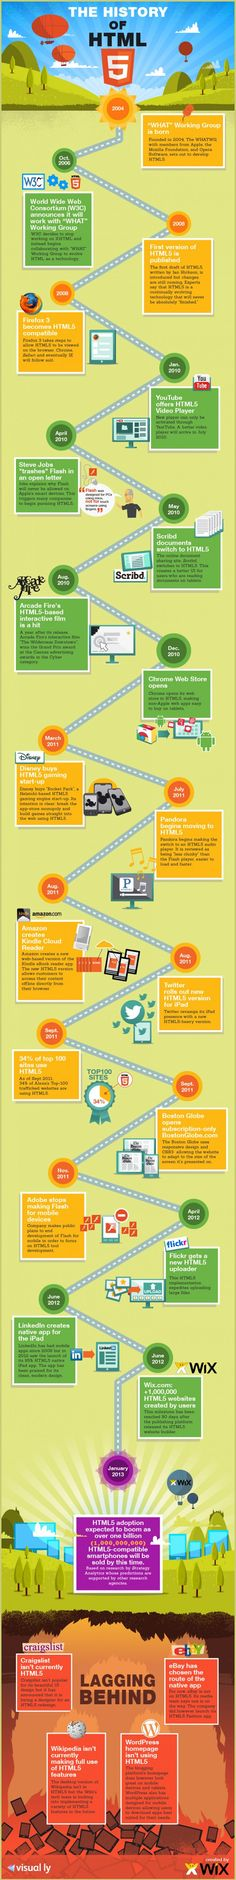 Infographic: History of HTML5   #infographic